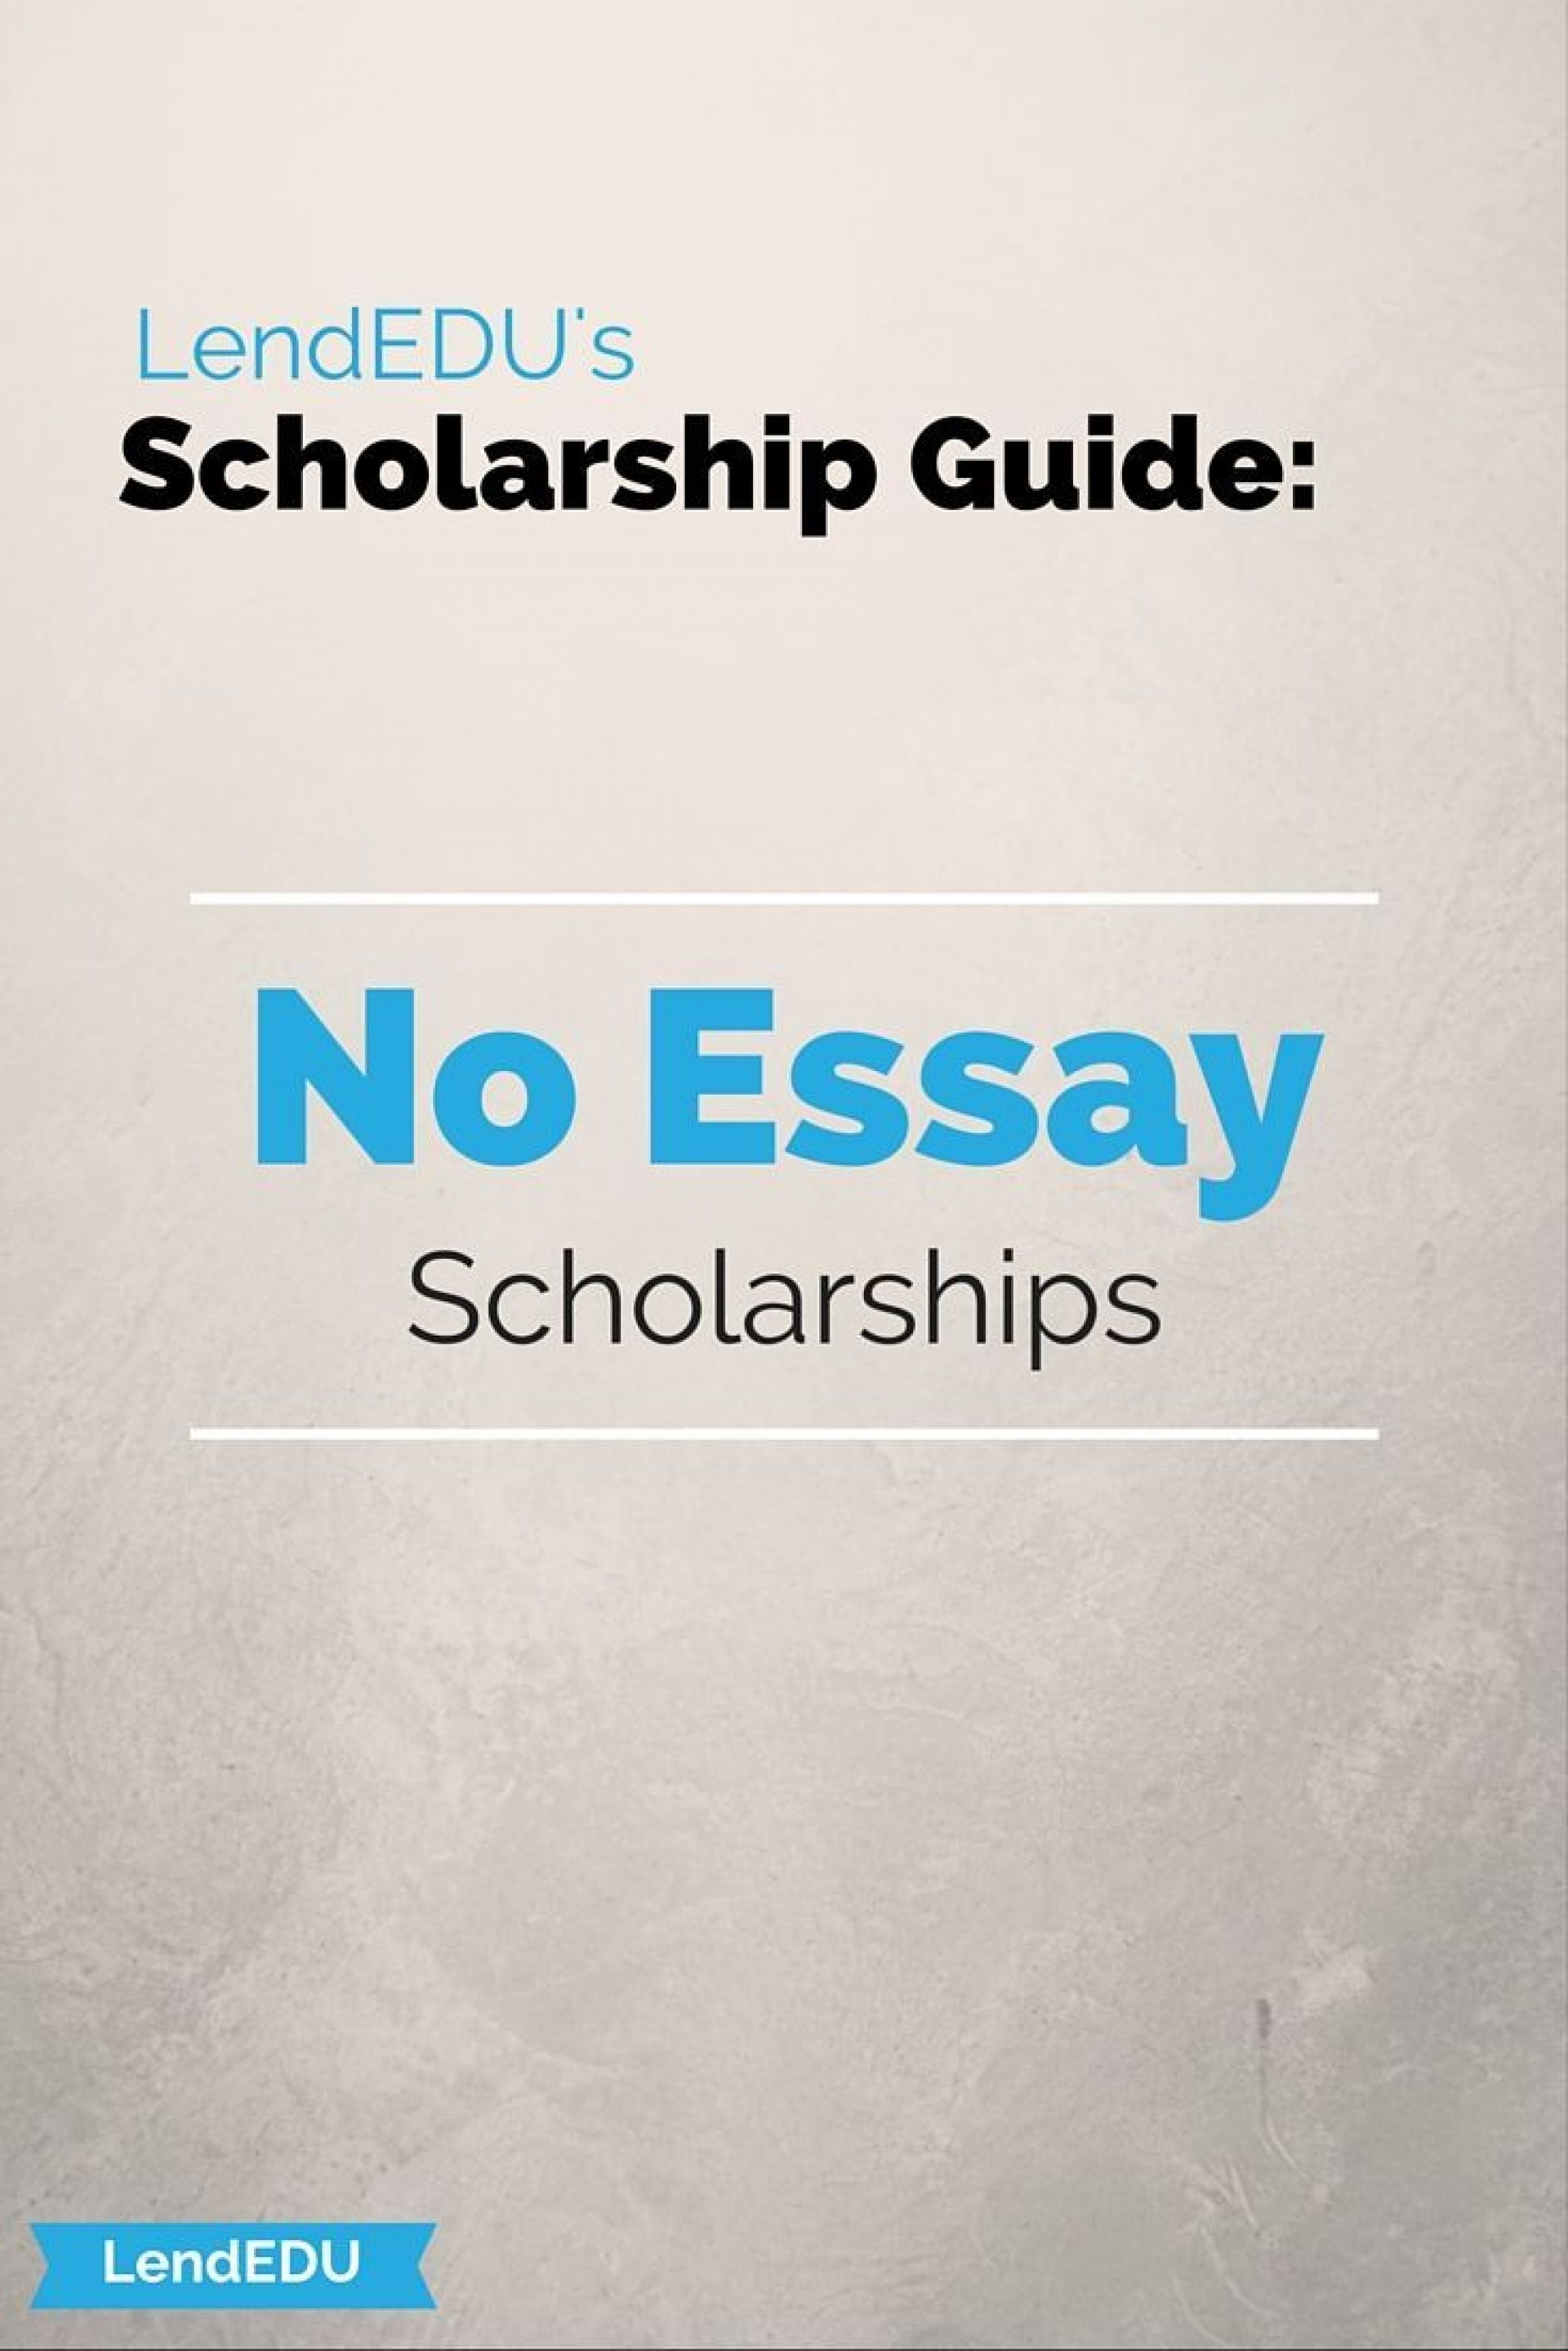 016 Essay Example No Scholarship Wondrous Scholarships For High School Seniors Niche Reddit Legit 1920